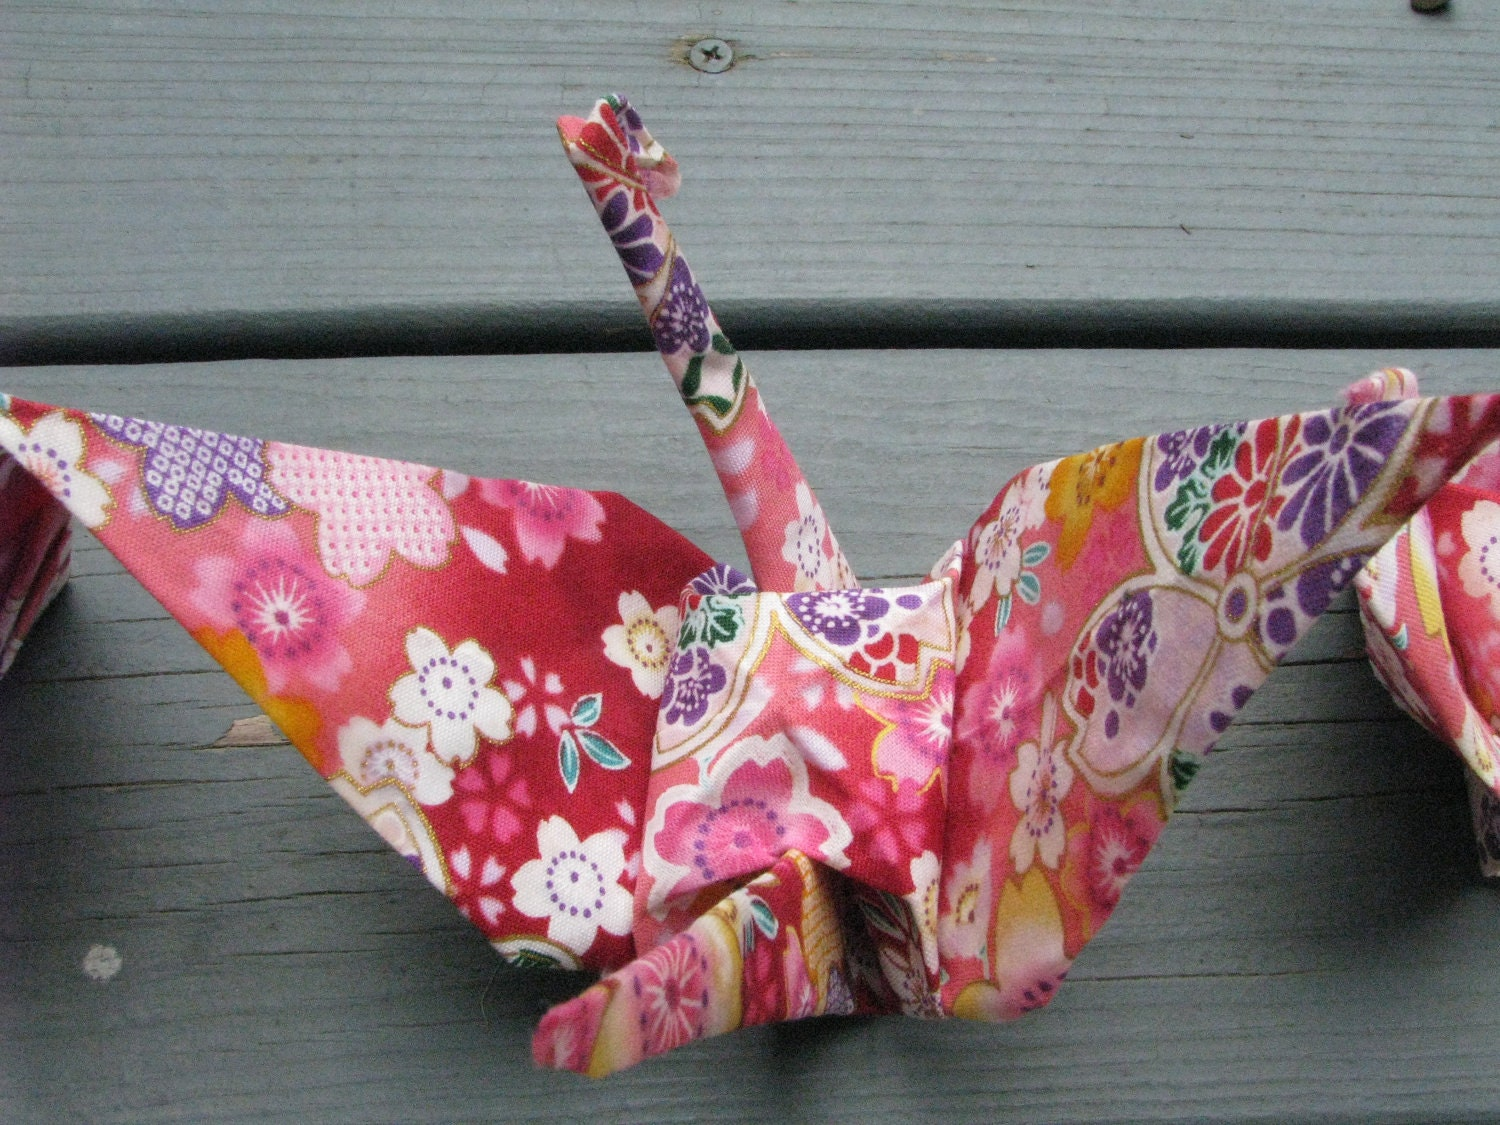 Large Fancy Origami Crane Light purple and pink with Flowers - photo#23